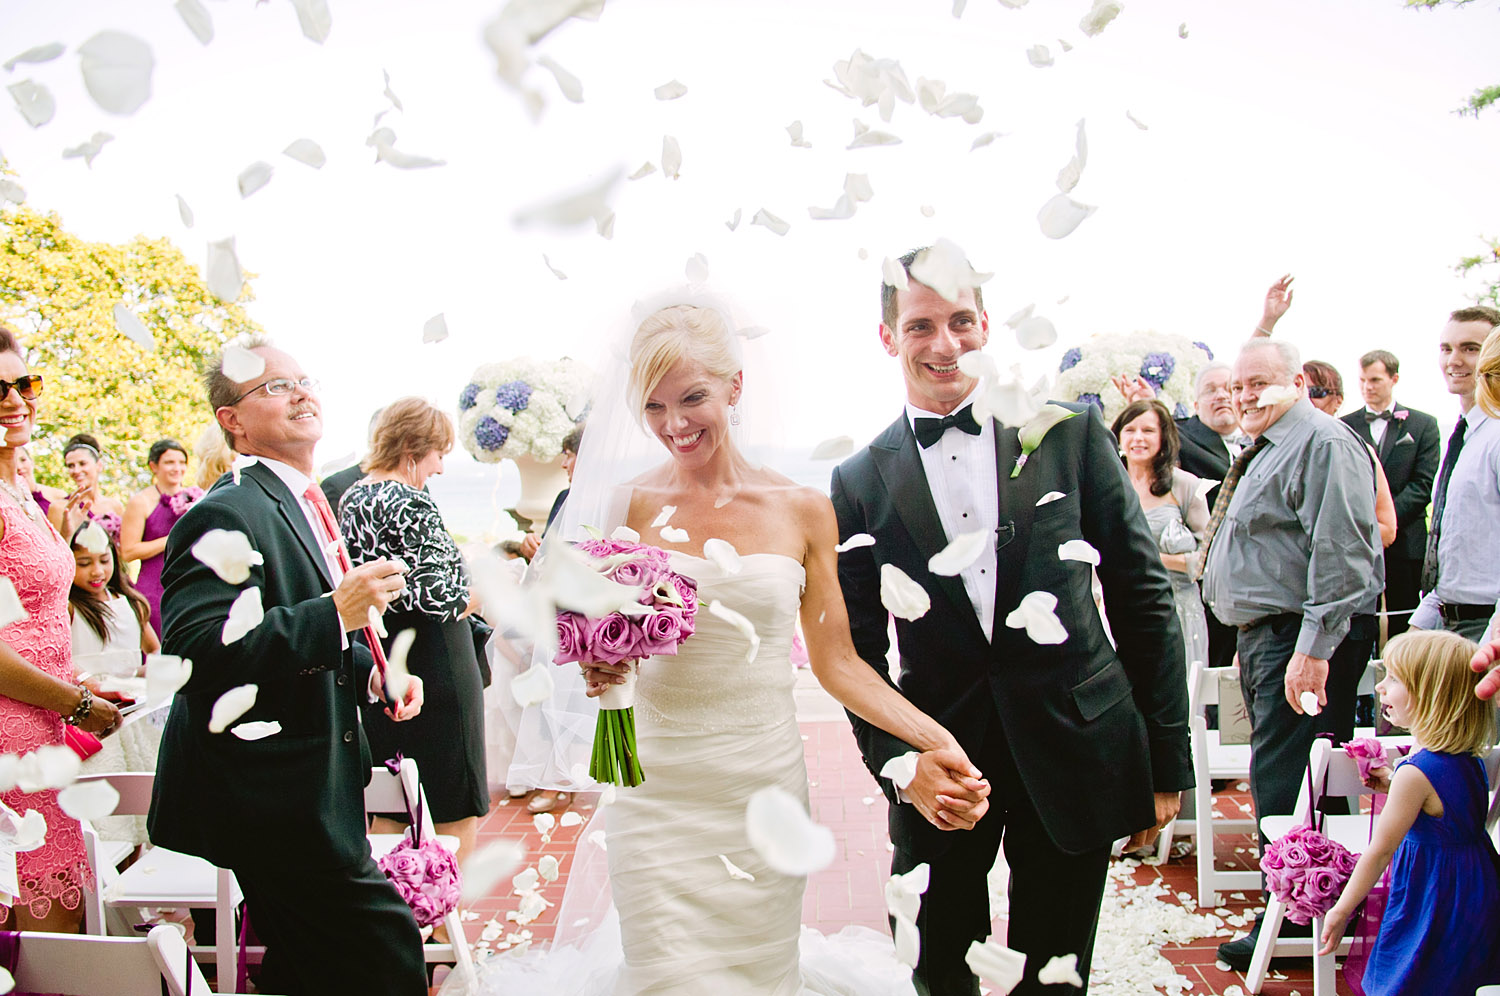 the bride and groom exit the ceremony with guests throwing rose petals at their Italian Destination Wedding at the Villa Terrace - a favorite wedding venue of Destination WEdding Photographer, Lexia Frank, who is a film photographer for luxury weddings